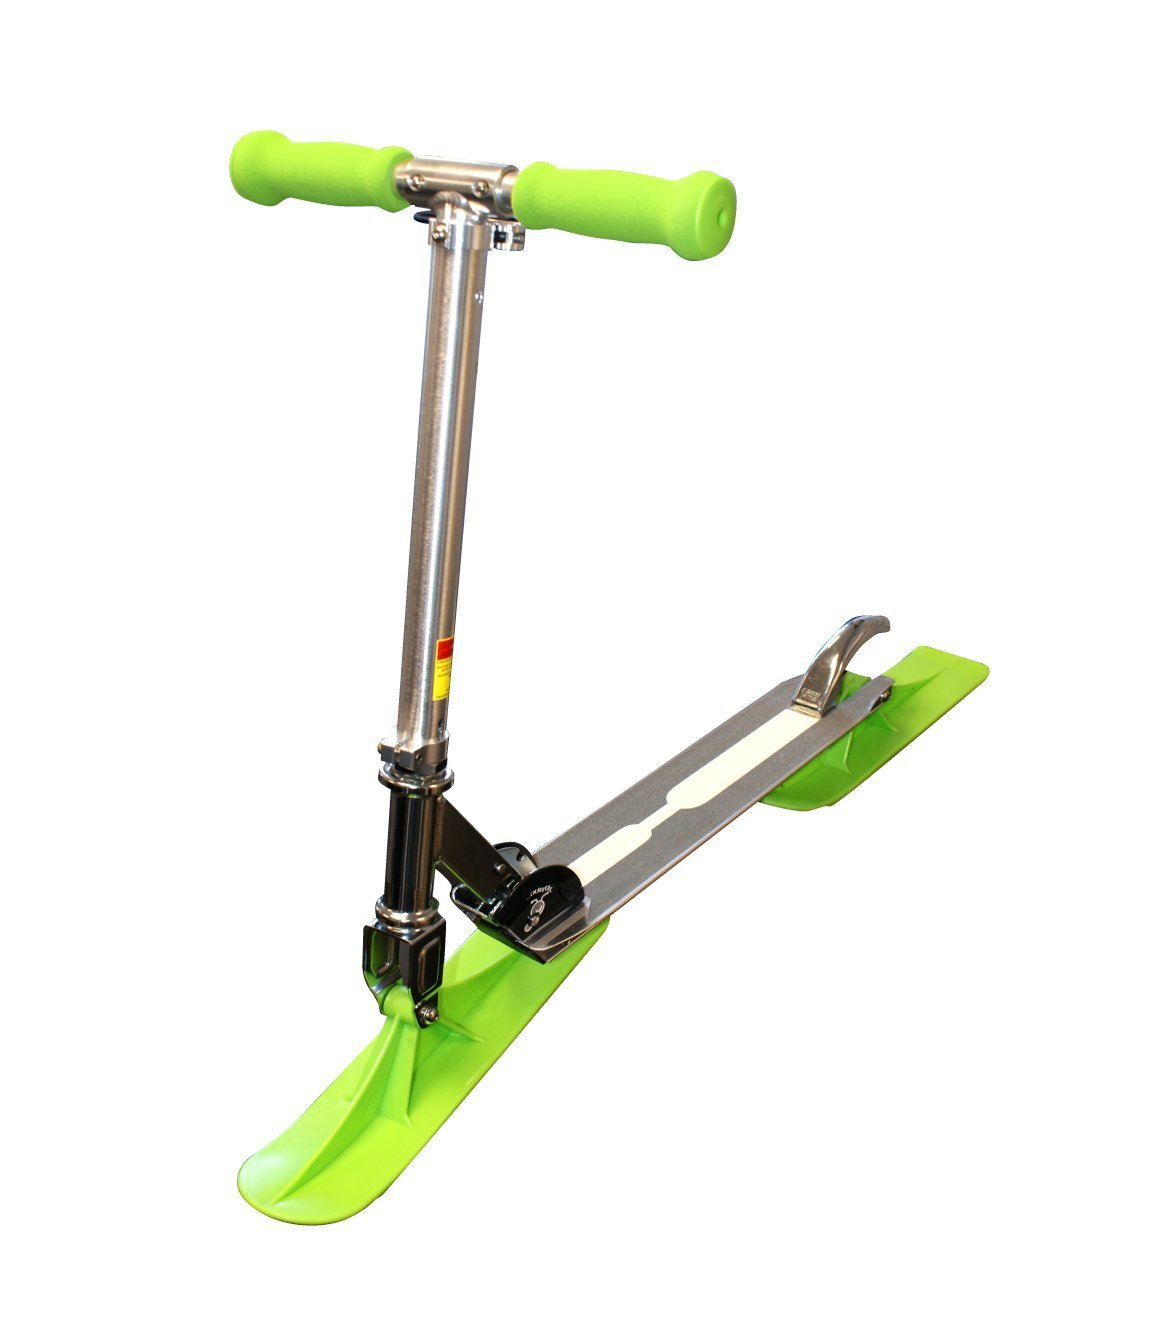 Scooter Ski - Scooter Converter Kit